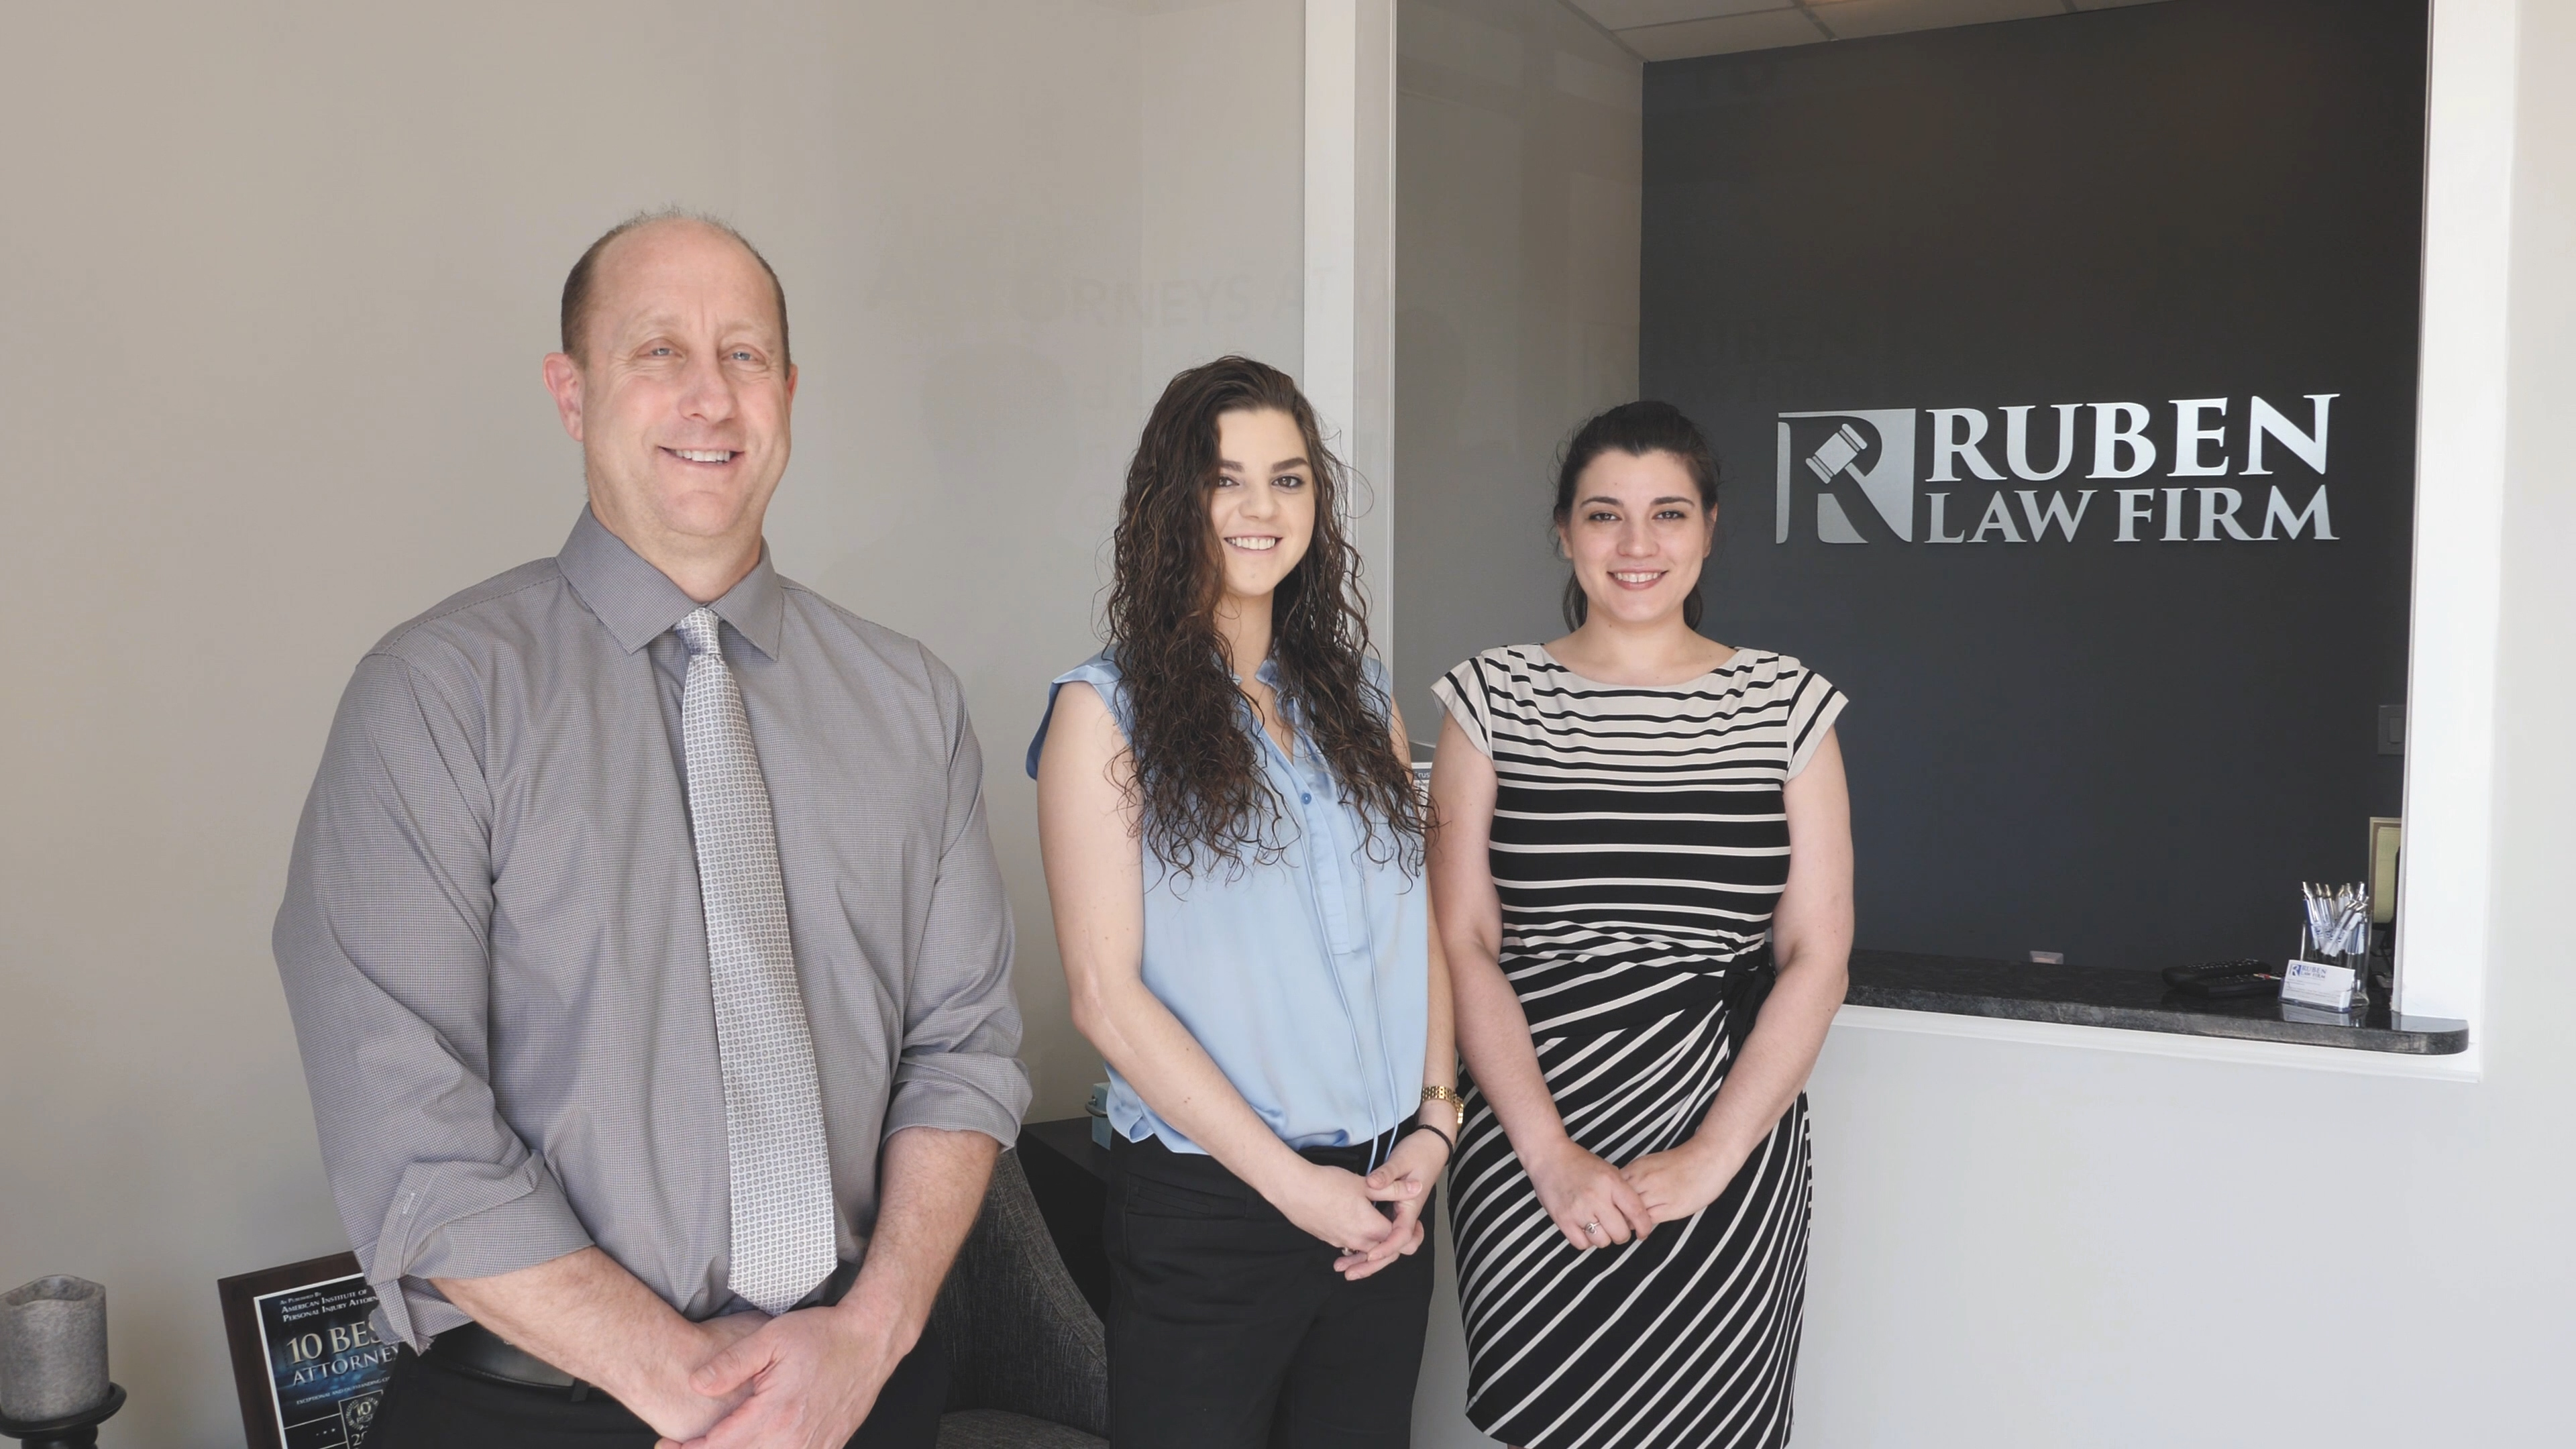 The Ruben Law Firm team in the newly opened office.